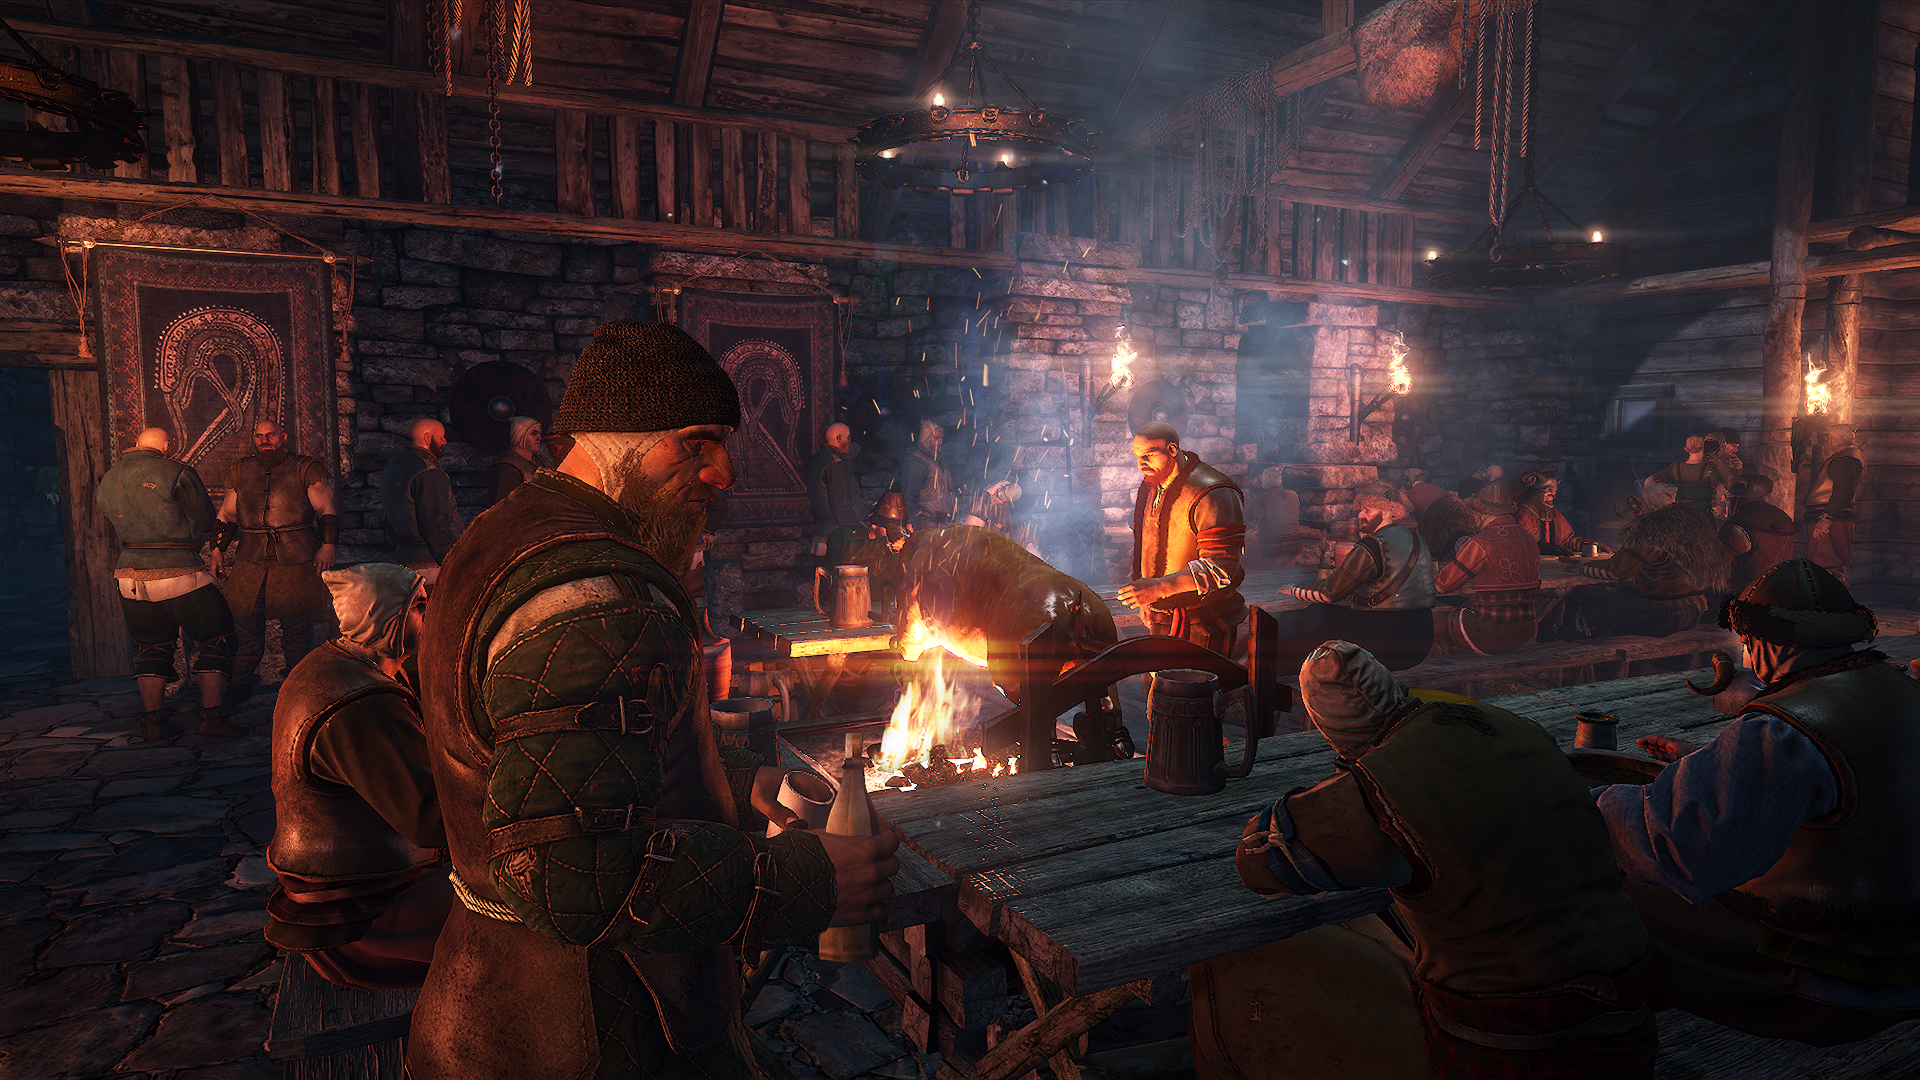 Screenshots The Witcher 3 Wiki Guide Ign The Witcher The Witcher 3 Witcher 3 Wild Hunt